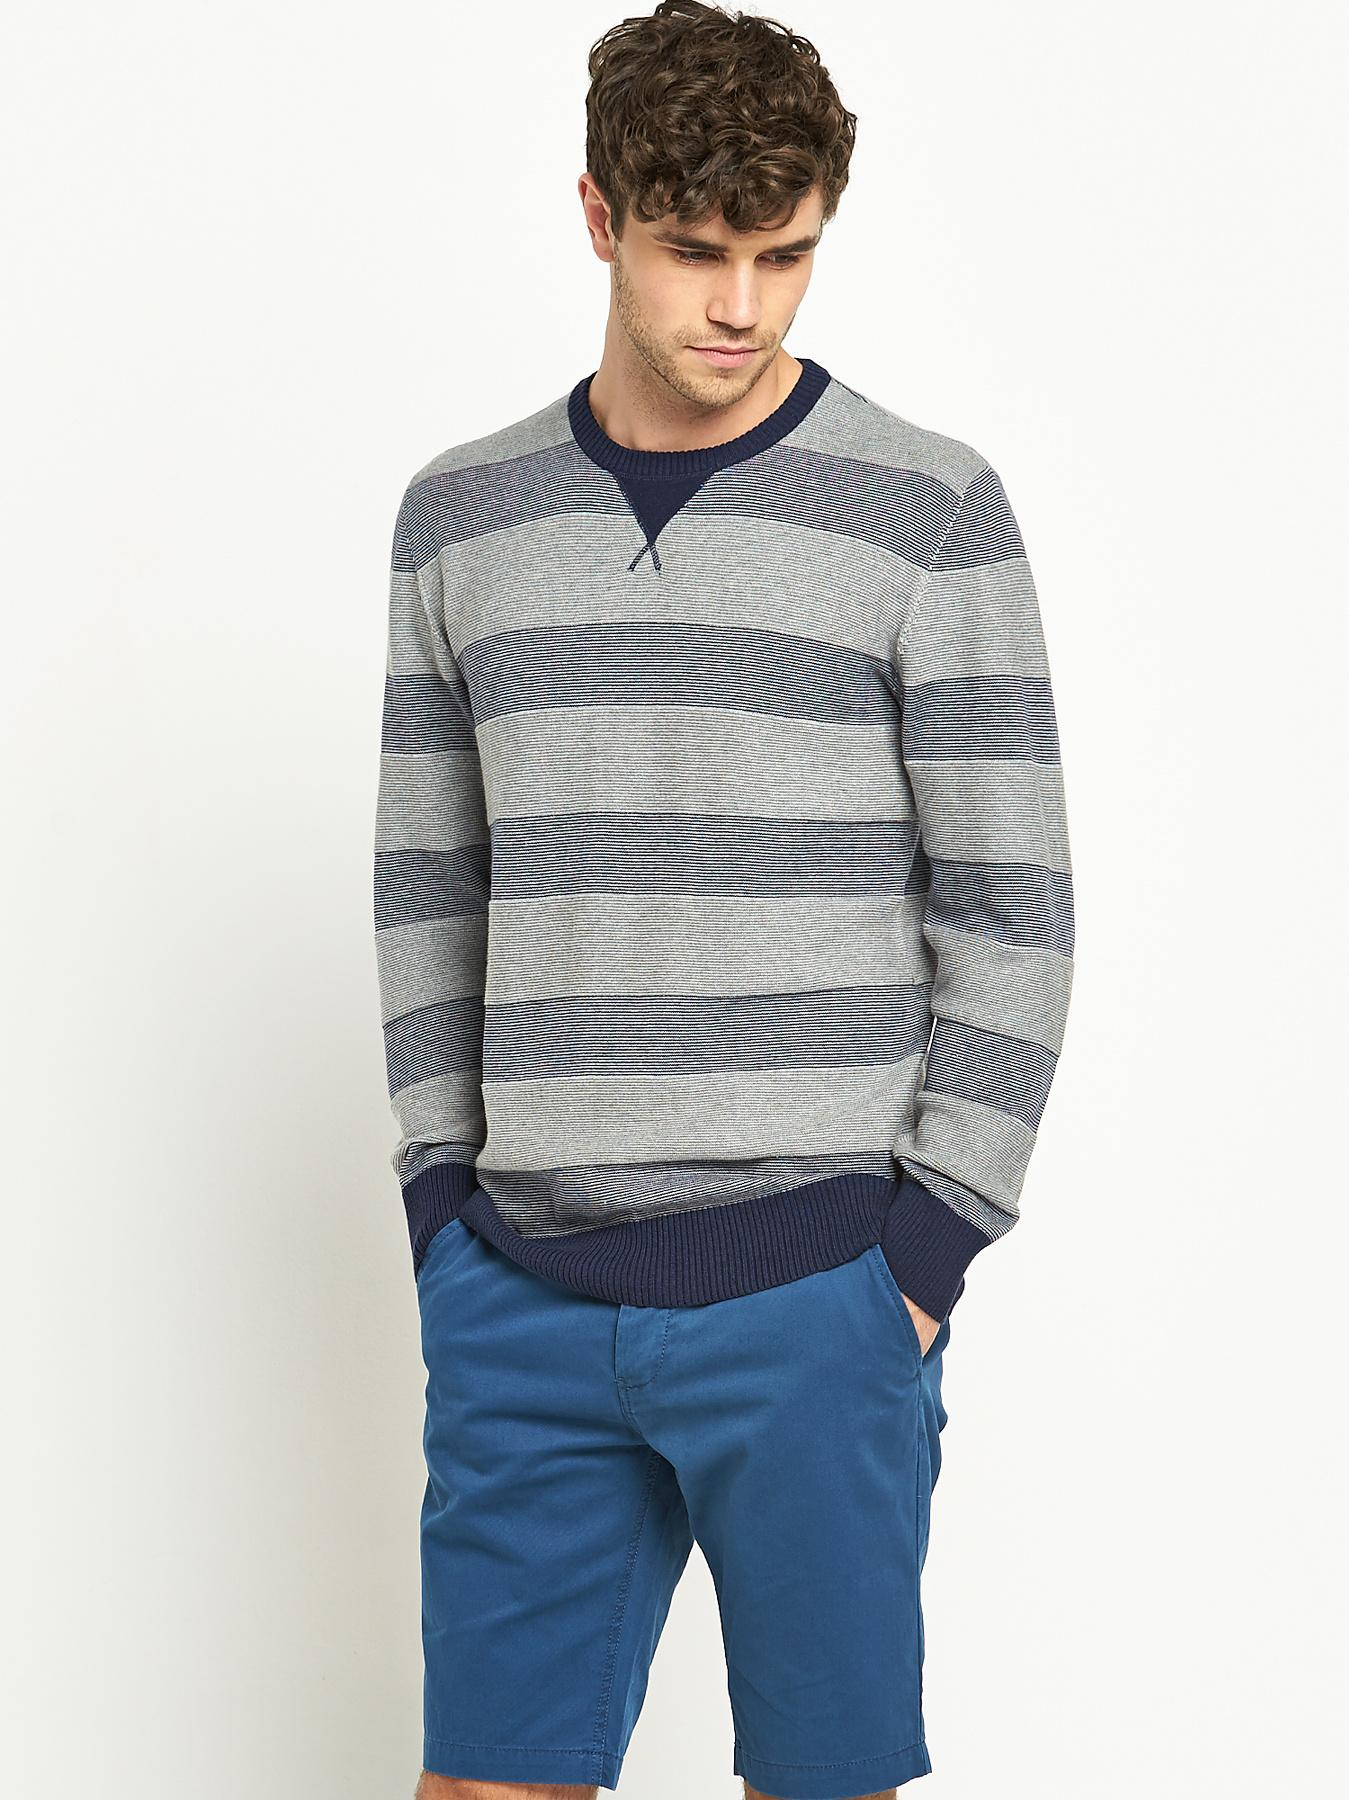 Goodsouls Mens Stripe Crew Neck Jumper - Navy, Navy